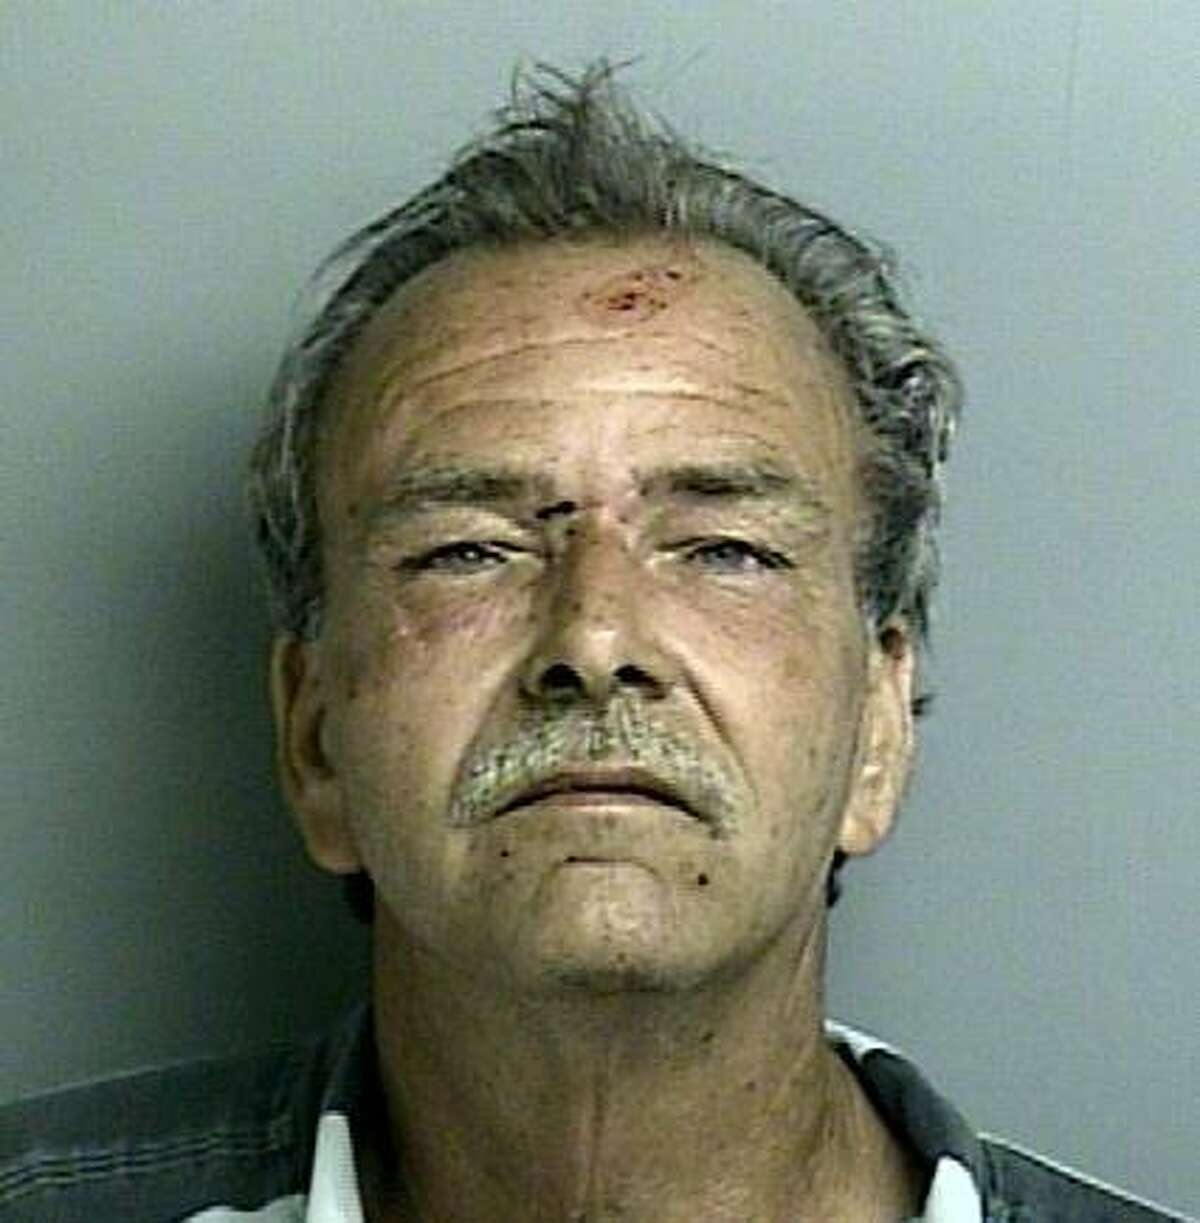 Donald Middleton, 56, has been sentenced to life in prison for his ninth DWI. Take a look at other Texans sentenced to life for driving drunk.